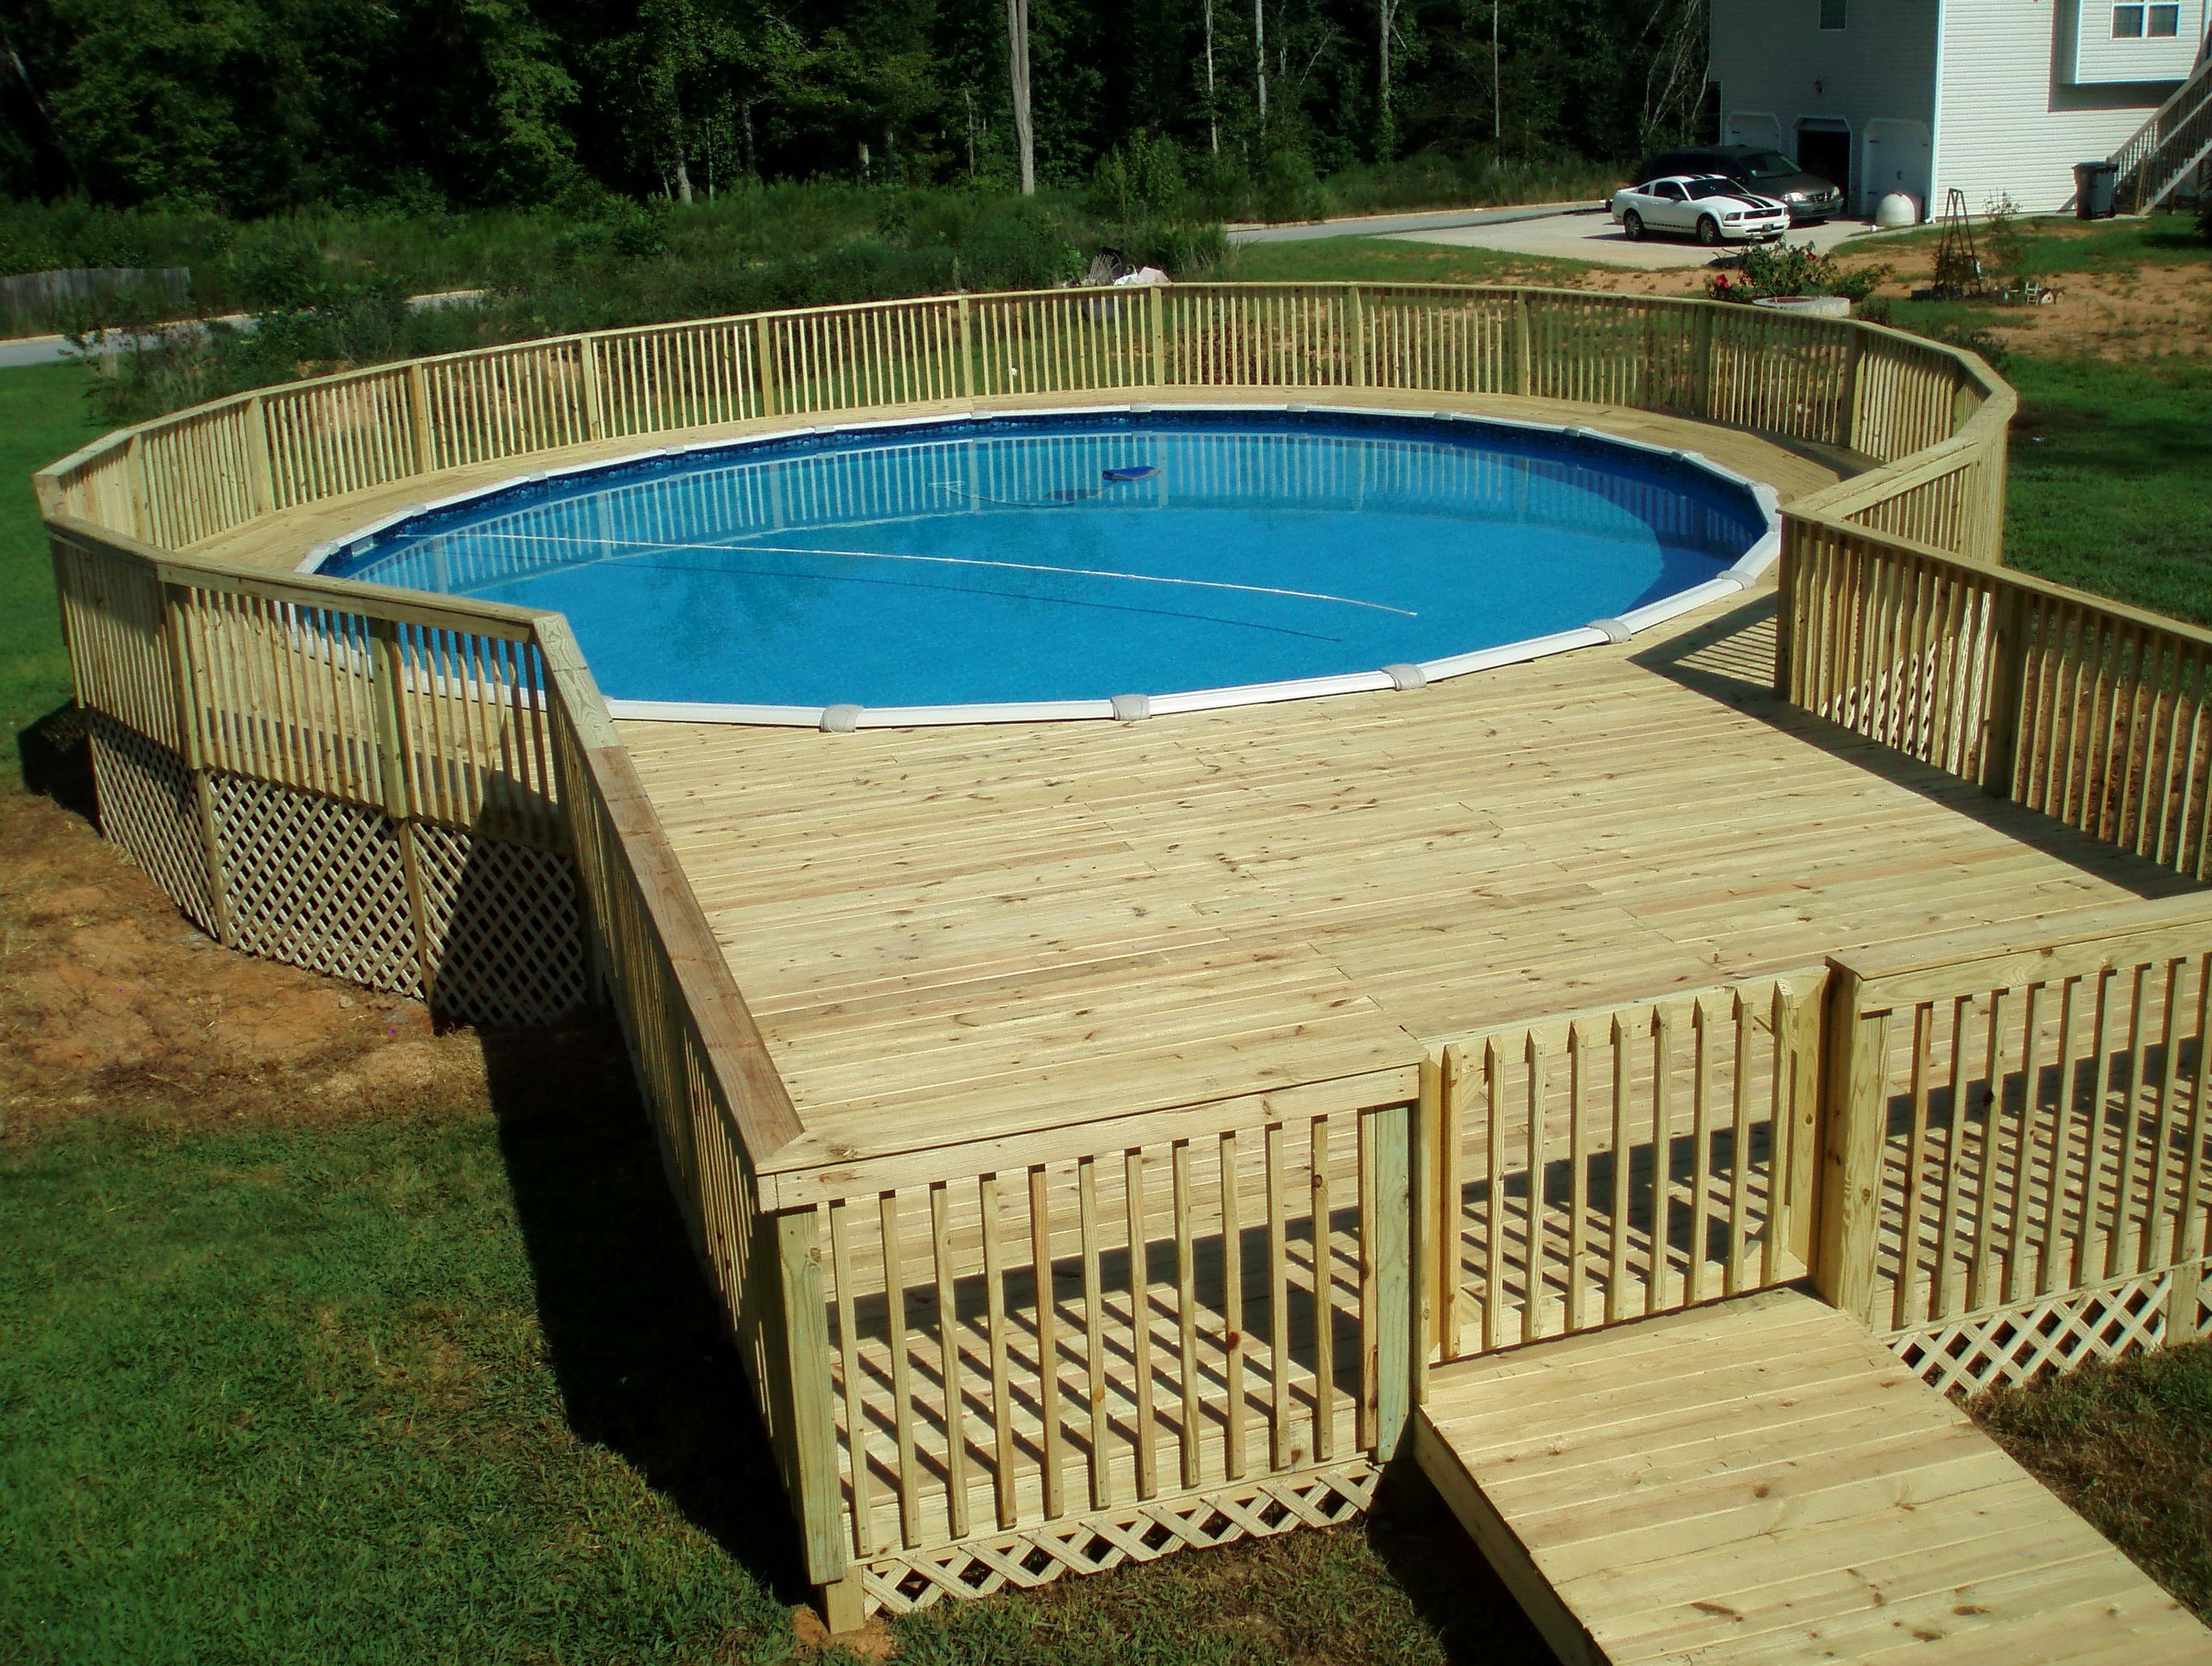 Image Result For 24 Ft Above Ground Pool Deck Plans Wood Pool Deck Pool Deck Plans Round Above Ground Pool